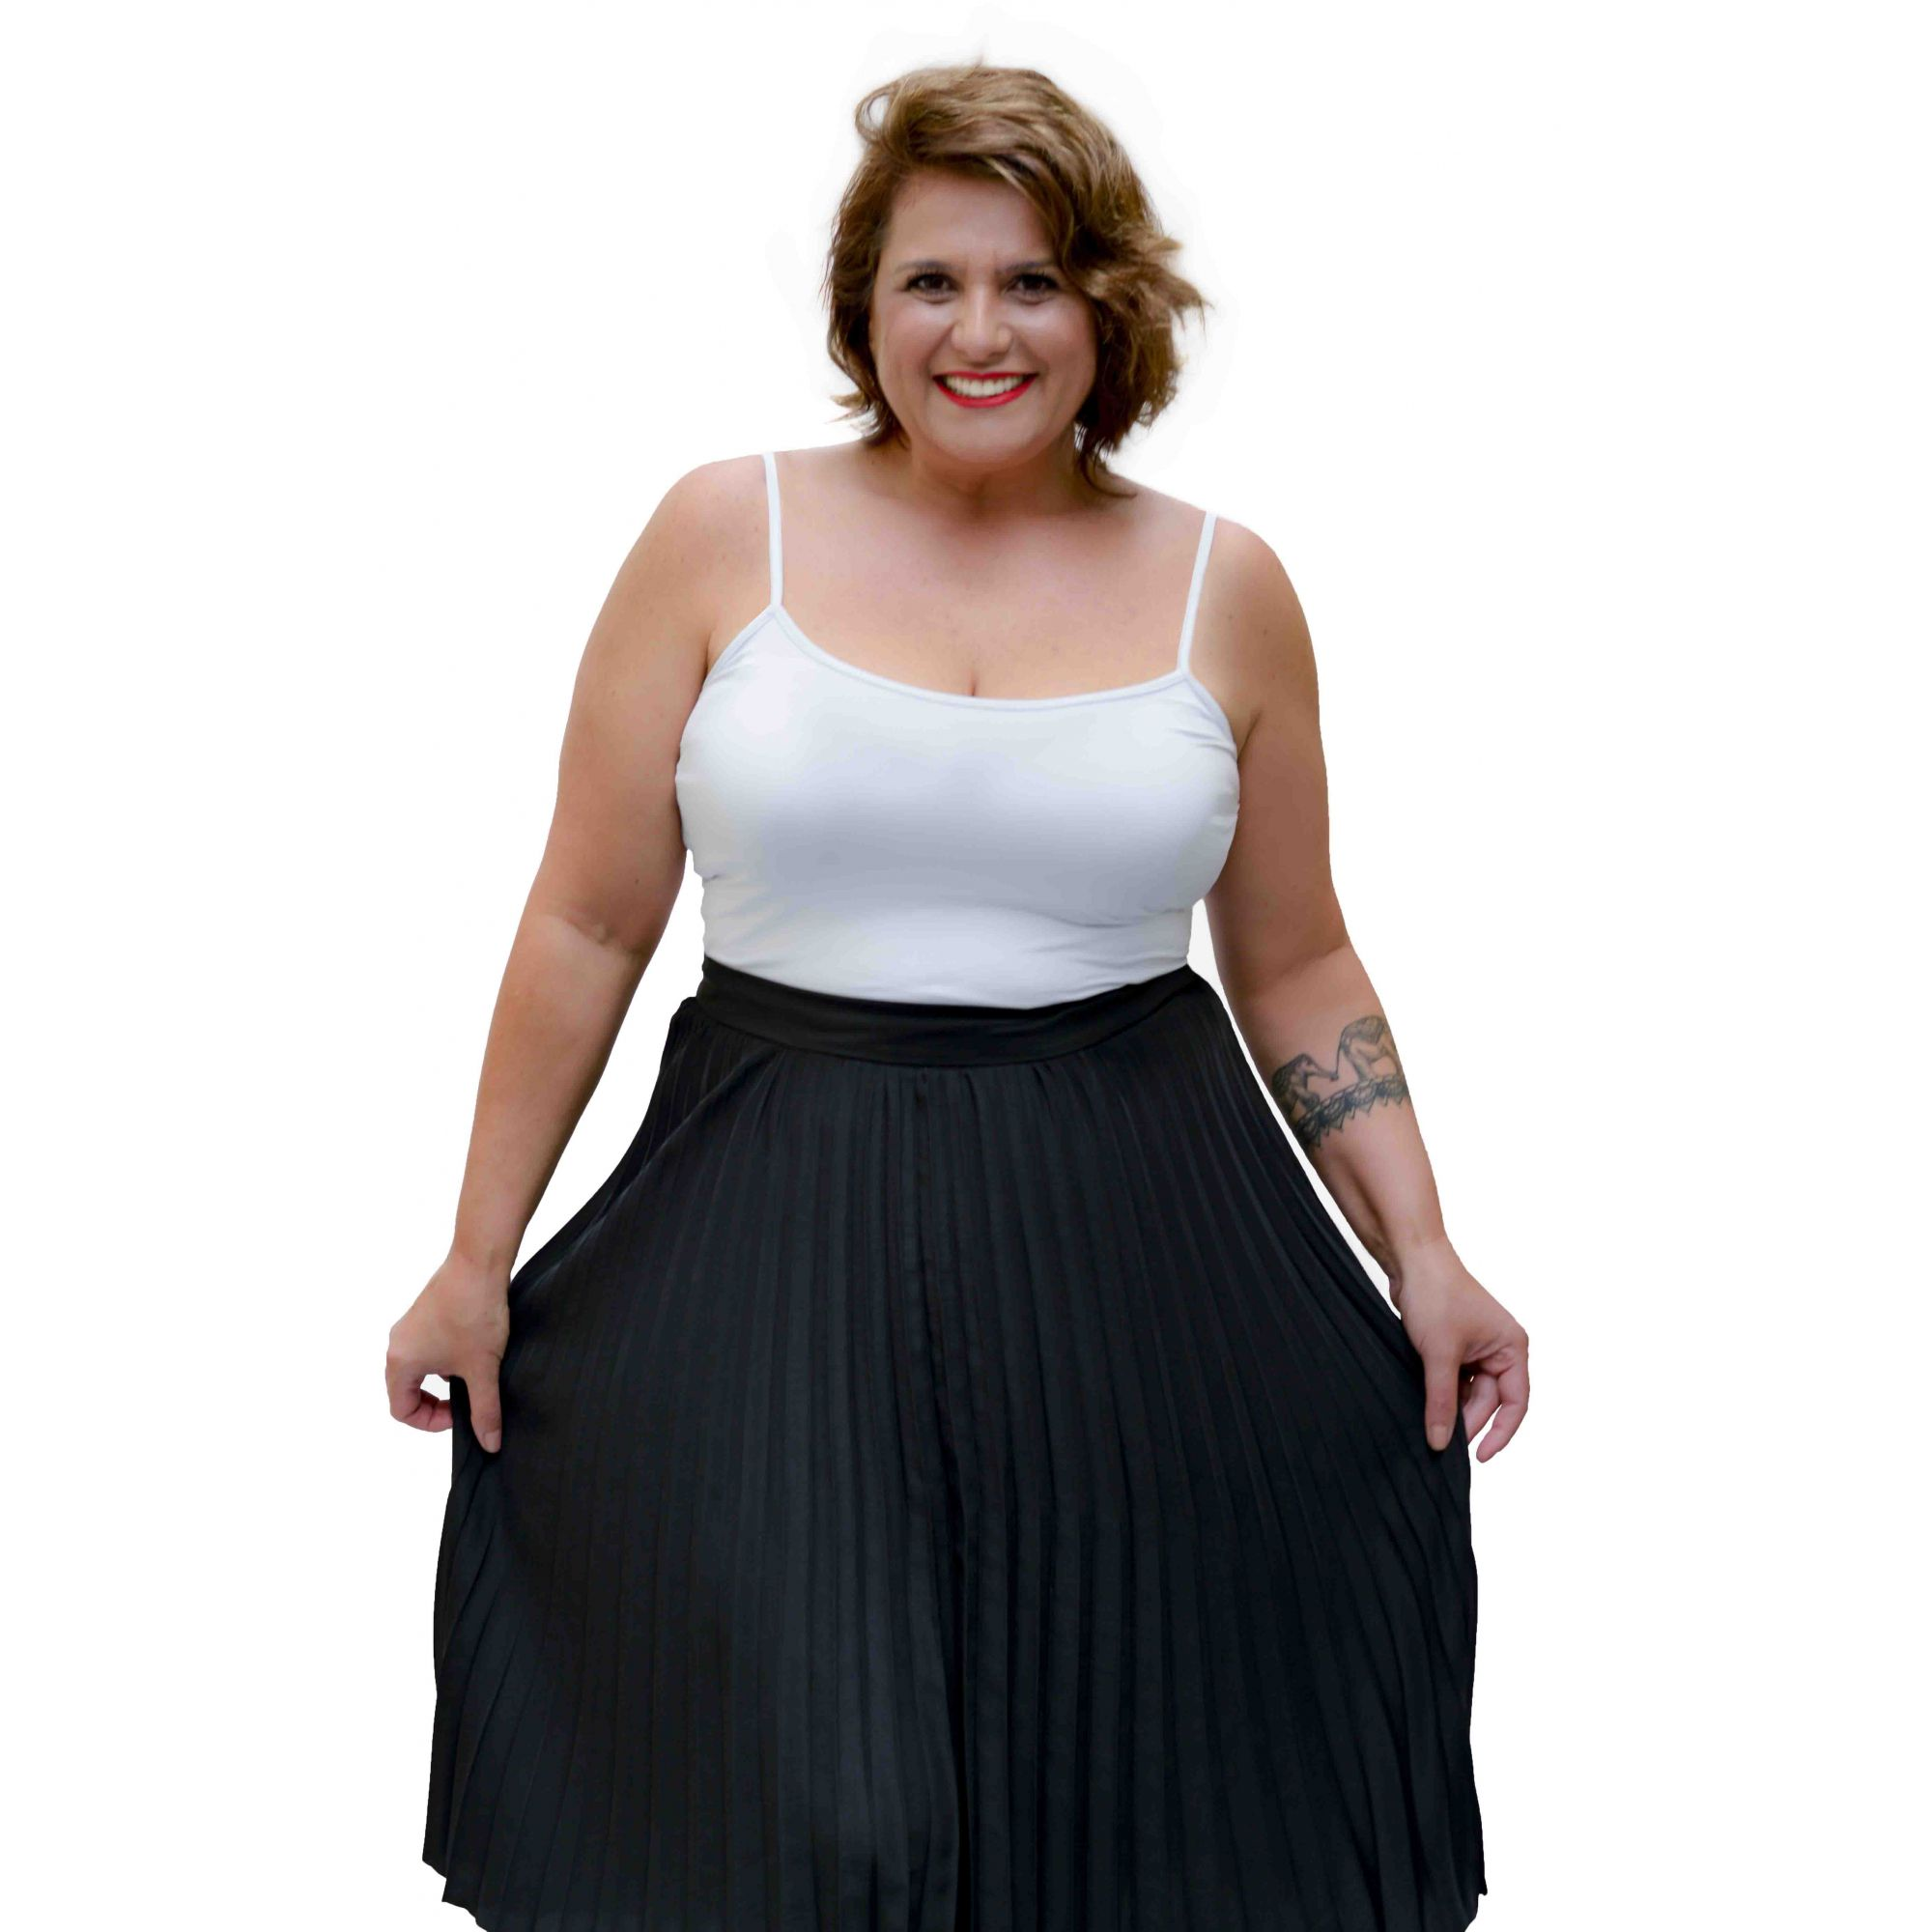 Camiseta Regata Plus Size Branca